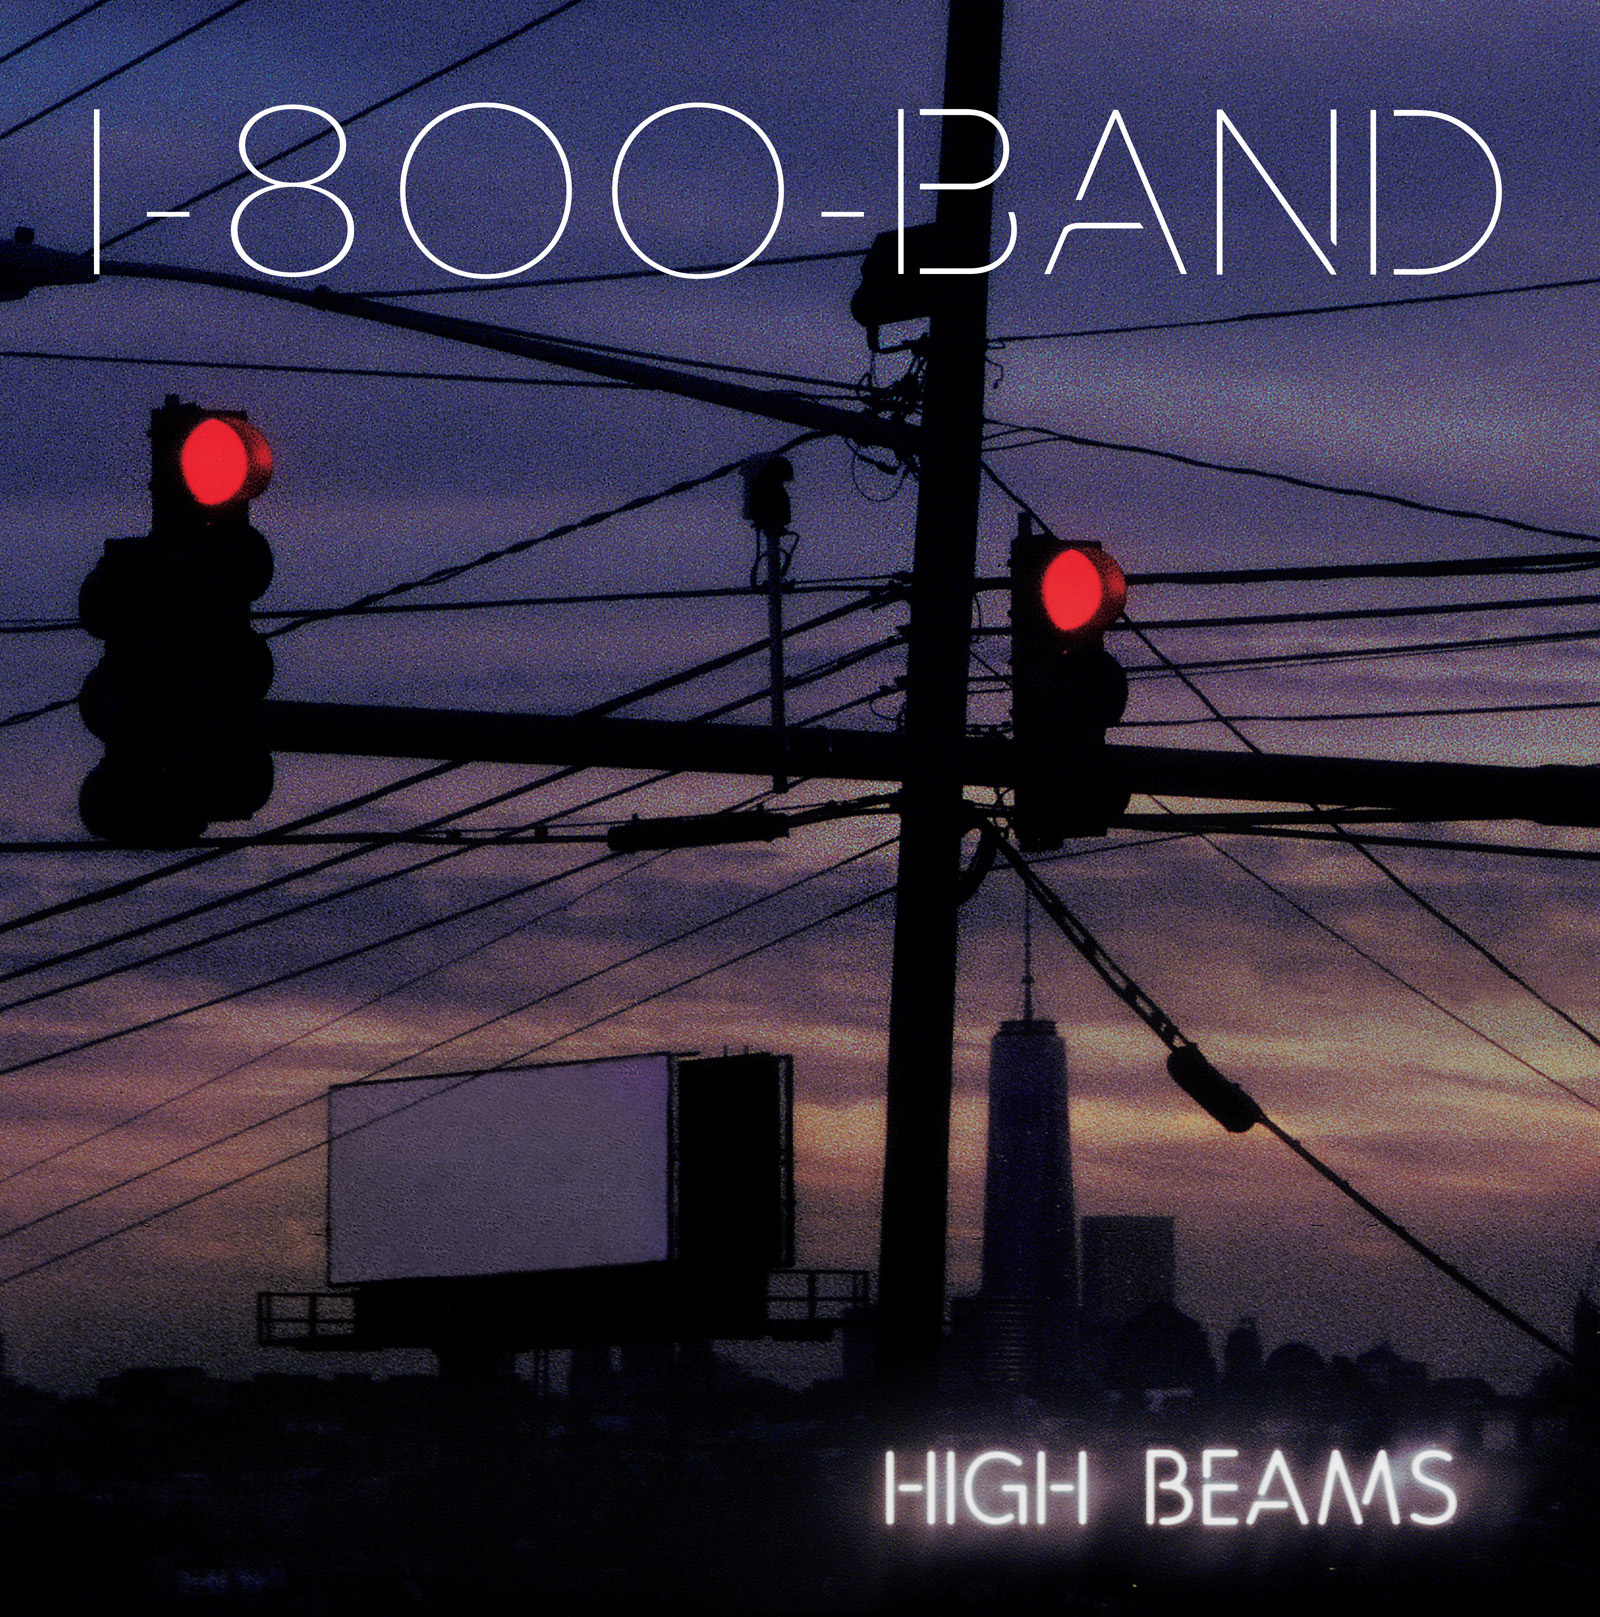 1800 Band Cover Art